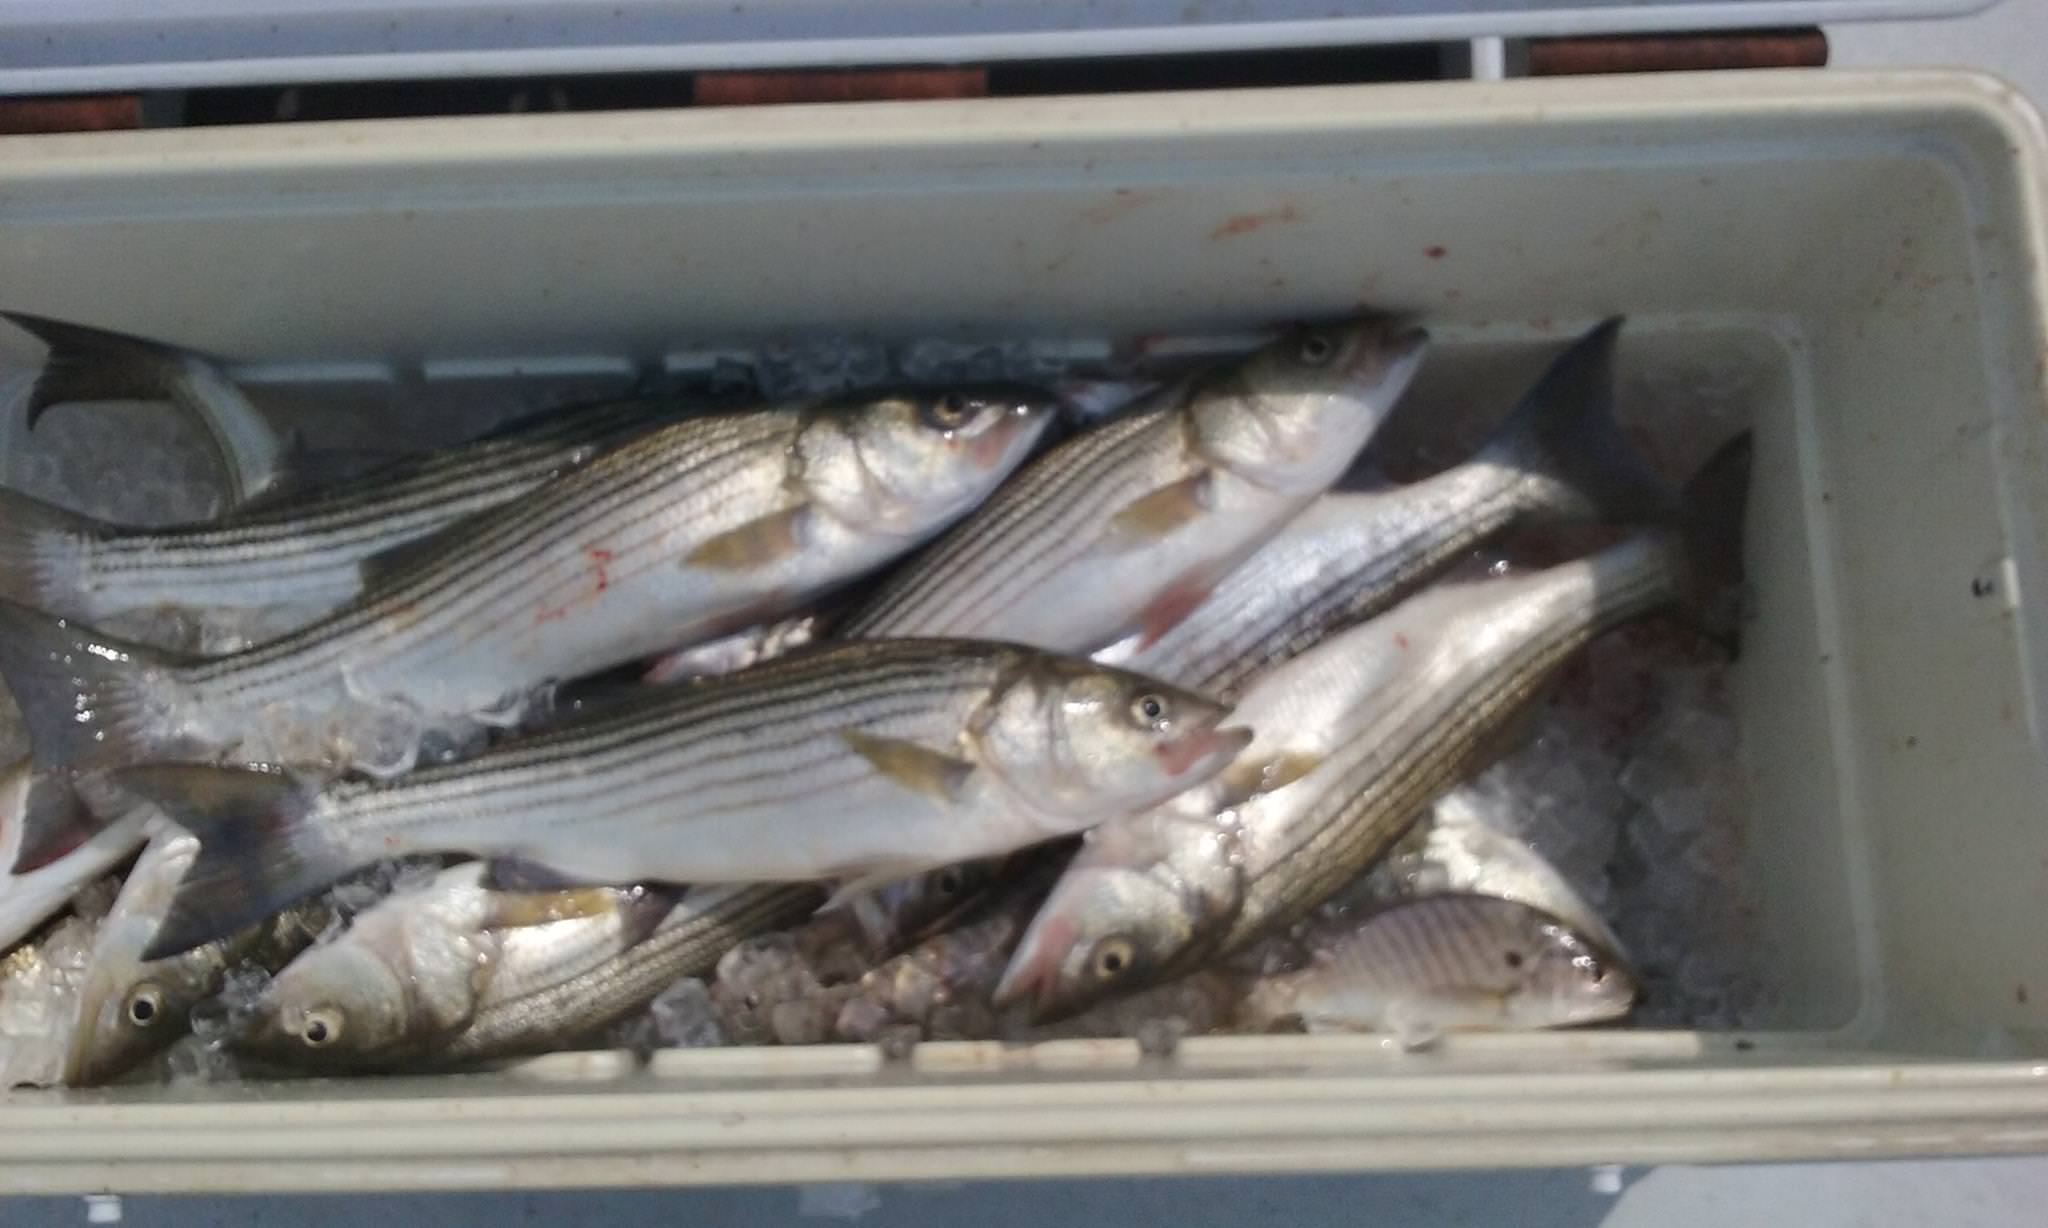 Another Day, Another Cooler Full of Fish!